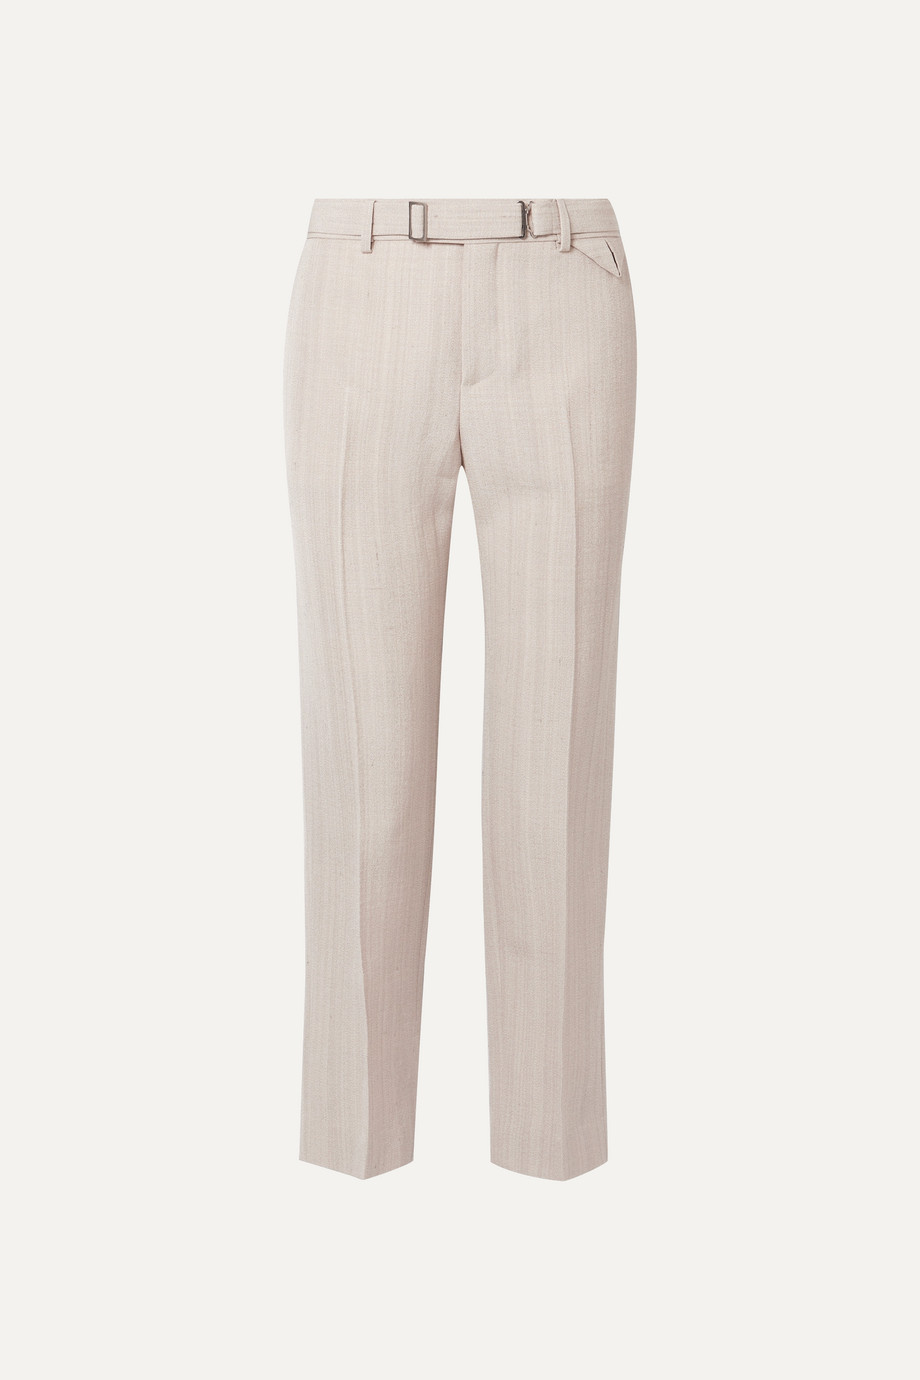 Bottega Veneta Belted cropped woven straight-leg pants